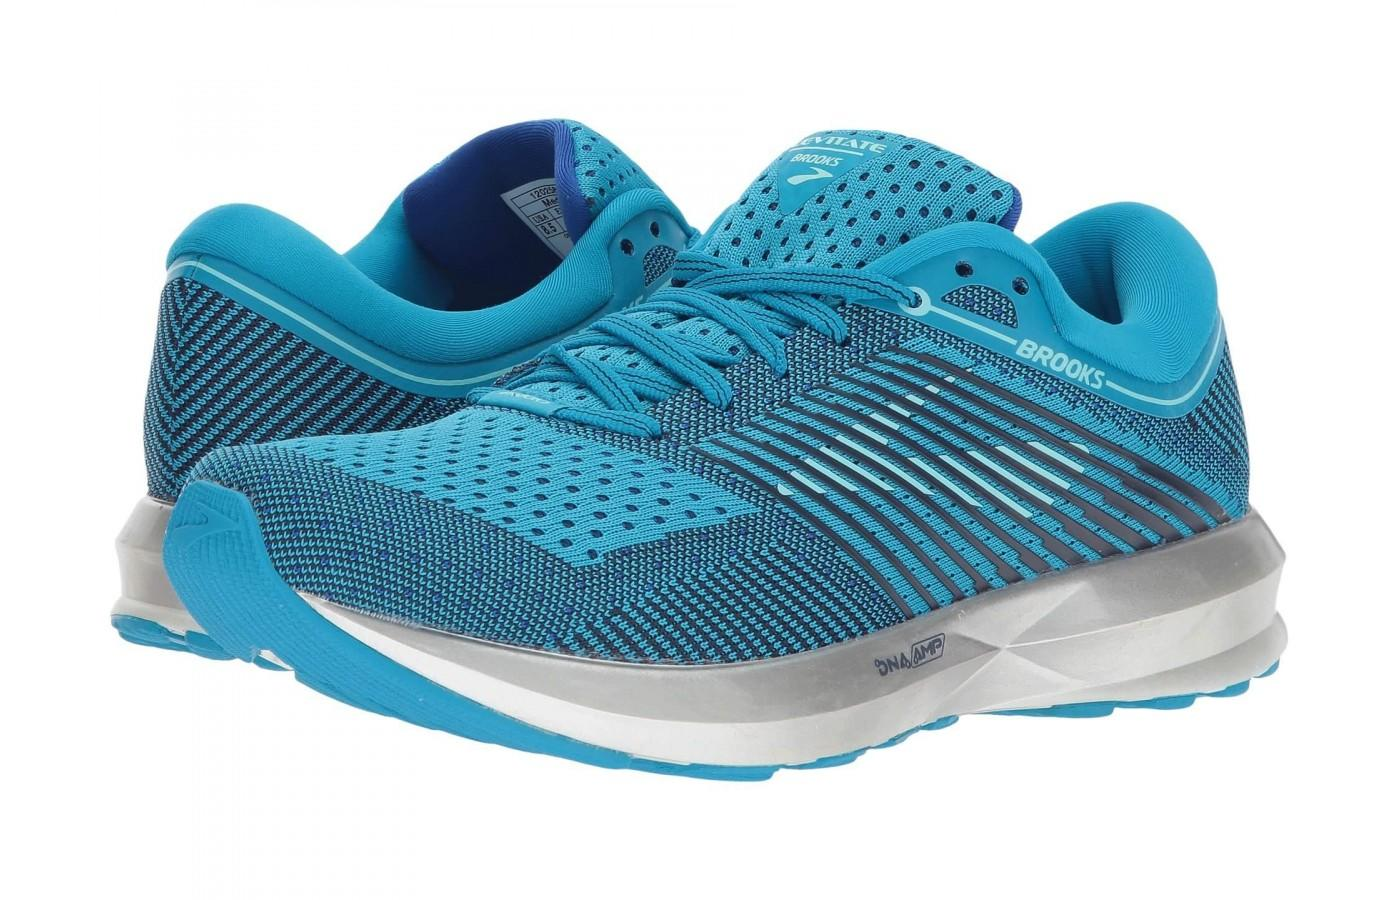 The Brooks Levitate is available in blue or white